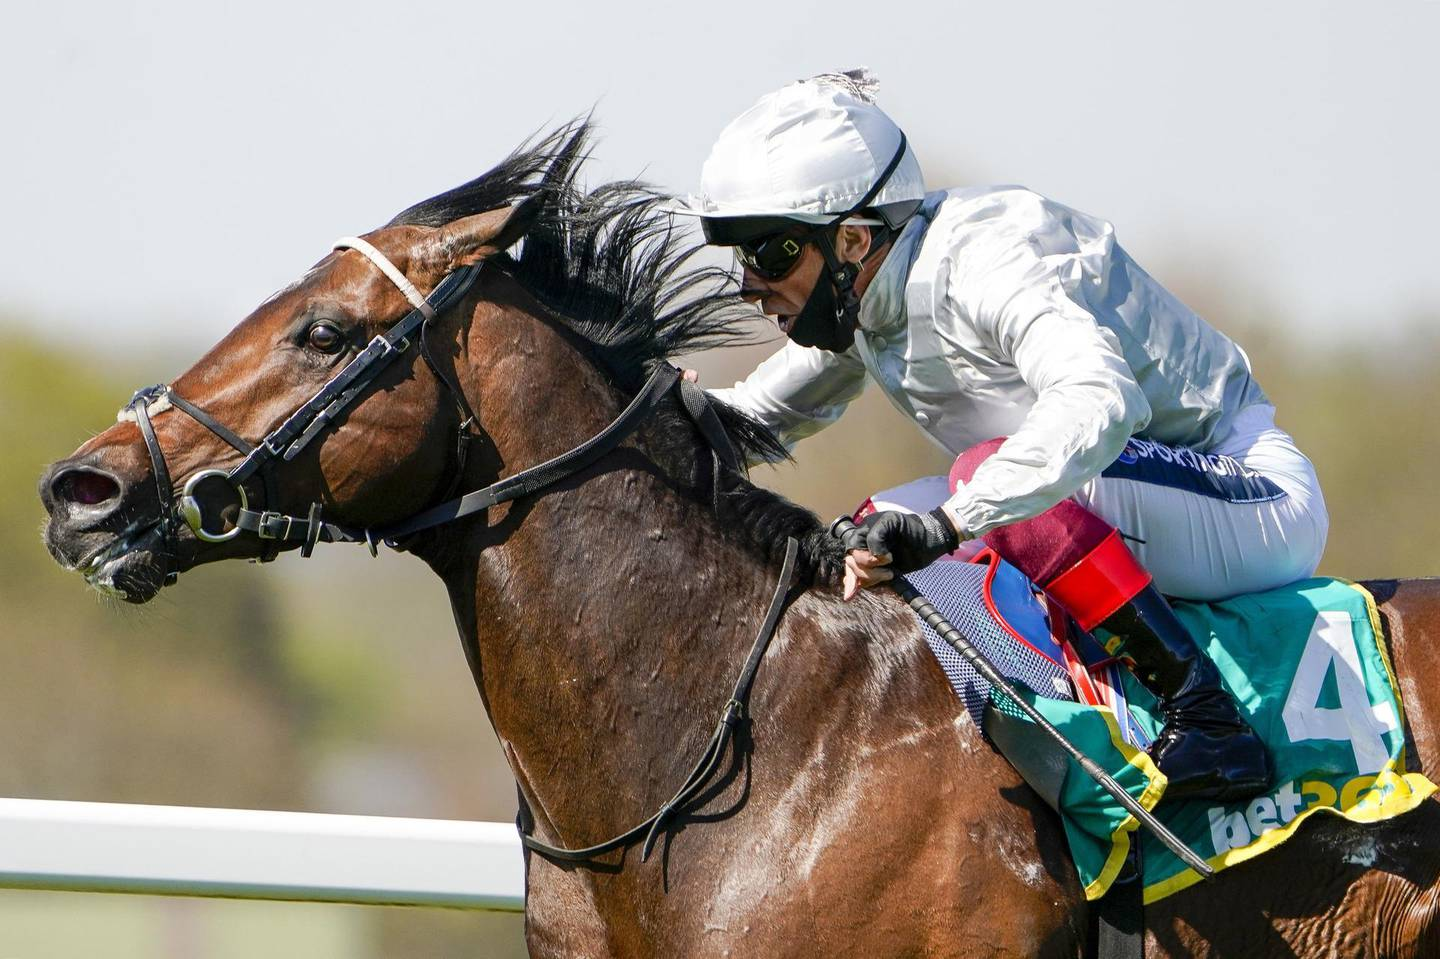 File photo dated 23-04-2021 of Frankie Dettori riding Palace Pier win The bet365 Mile at Sandown Park Racecourse. Issue date: Wednesday June 9, 2021. PA Photo. Palace Pier will face a maximum of 11 rivals when he bids for back-to-back Group One victories at Royal Ascot in the Queen Anne Stakes. See PA story RACING Ascot Tuesday. Photo credit should read Alan Crowhurst/PA Wire.